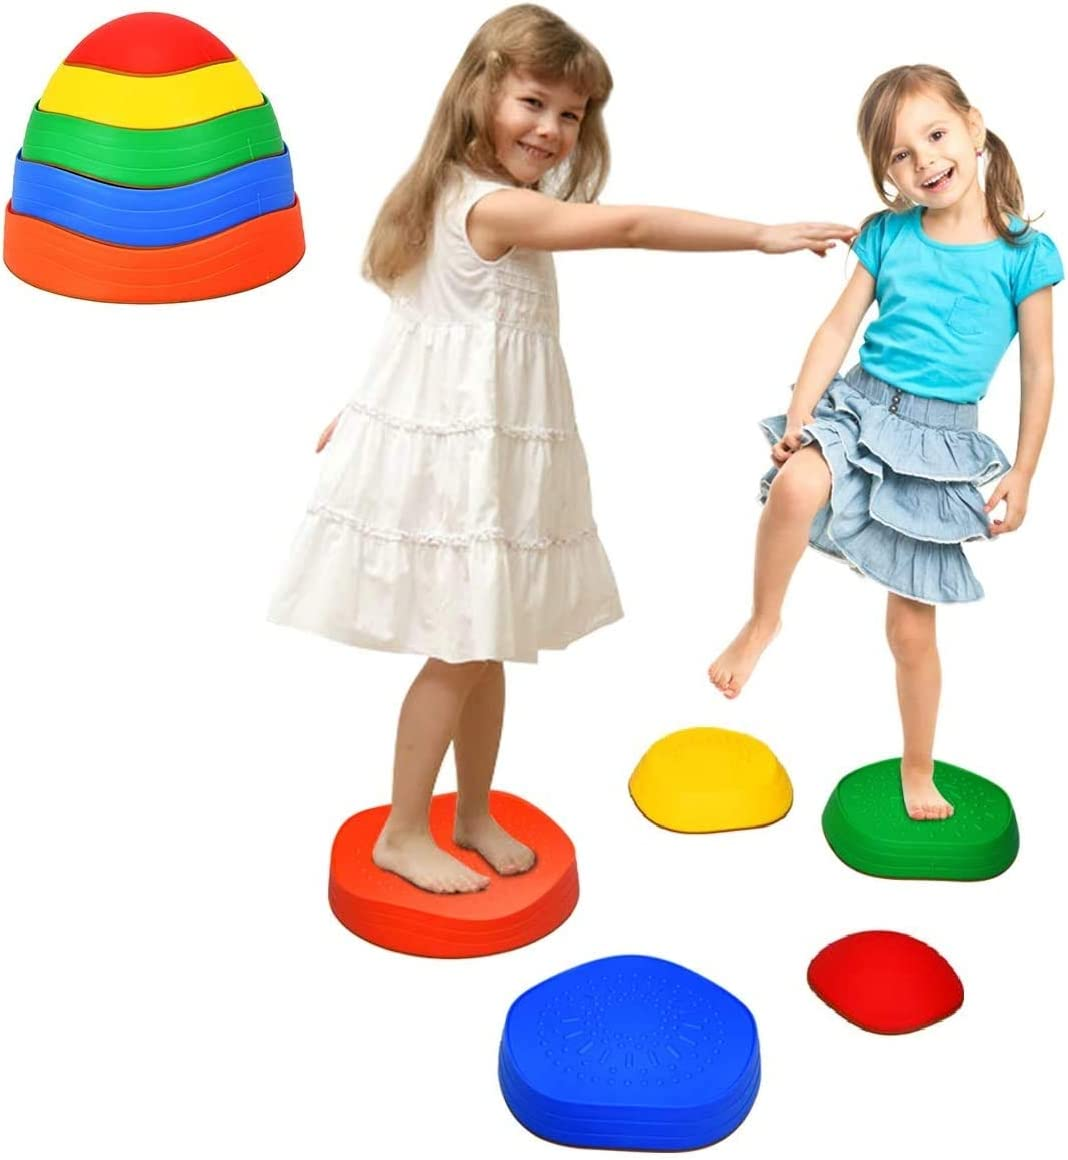 Costzon Kids Balance Stepping Stones, Set of 5 Silicone Non-Slip Stackable Wave Blocks, Portable Balance Blocks for Exercise Balance & Coordination, Rainbow Crossing River Stone for Indoor Outdoor